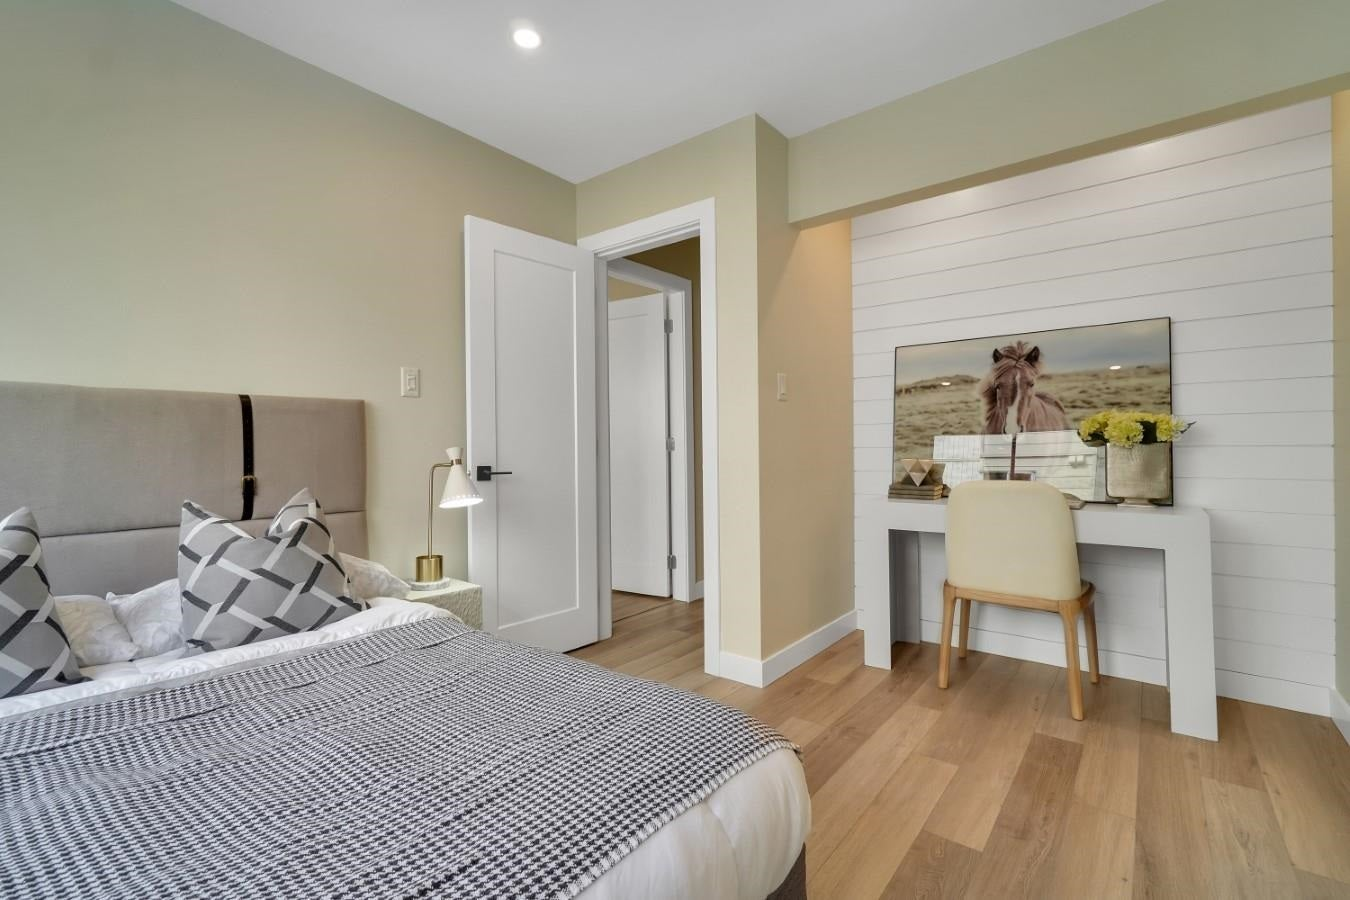 206 330 W 2ND STREET - Lower Lonsdale Apartment/Condo for sale, 2 Bedrooms (R2604160) - #22